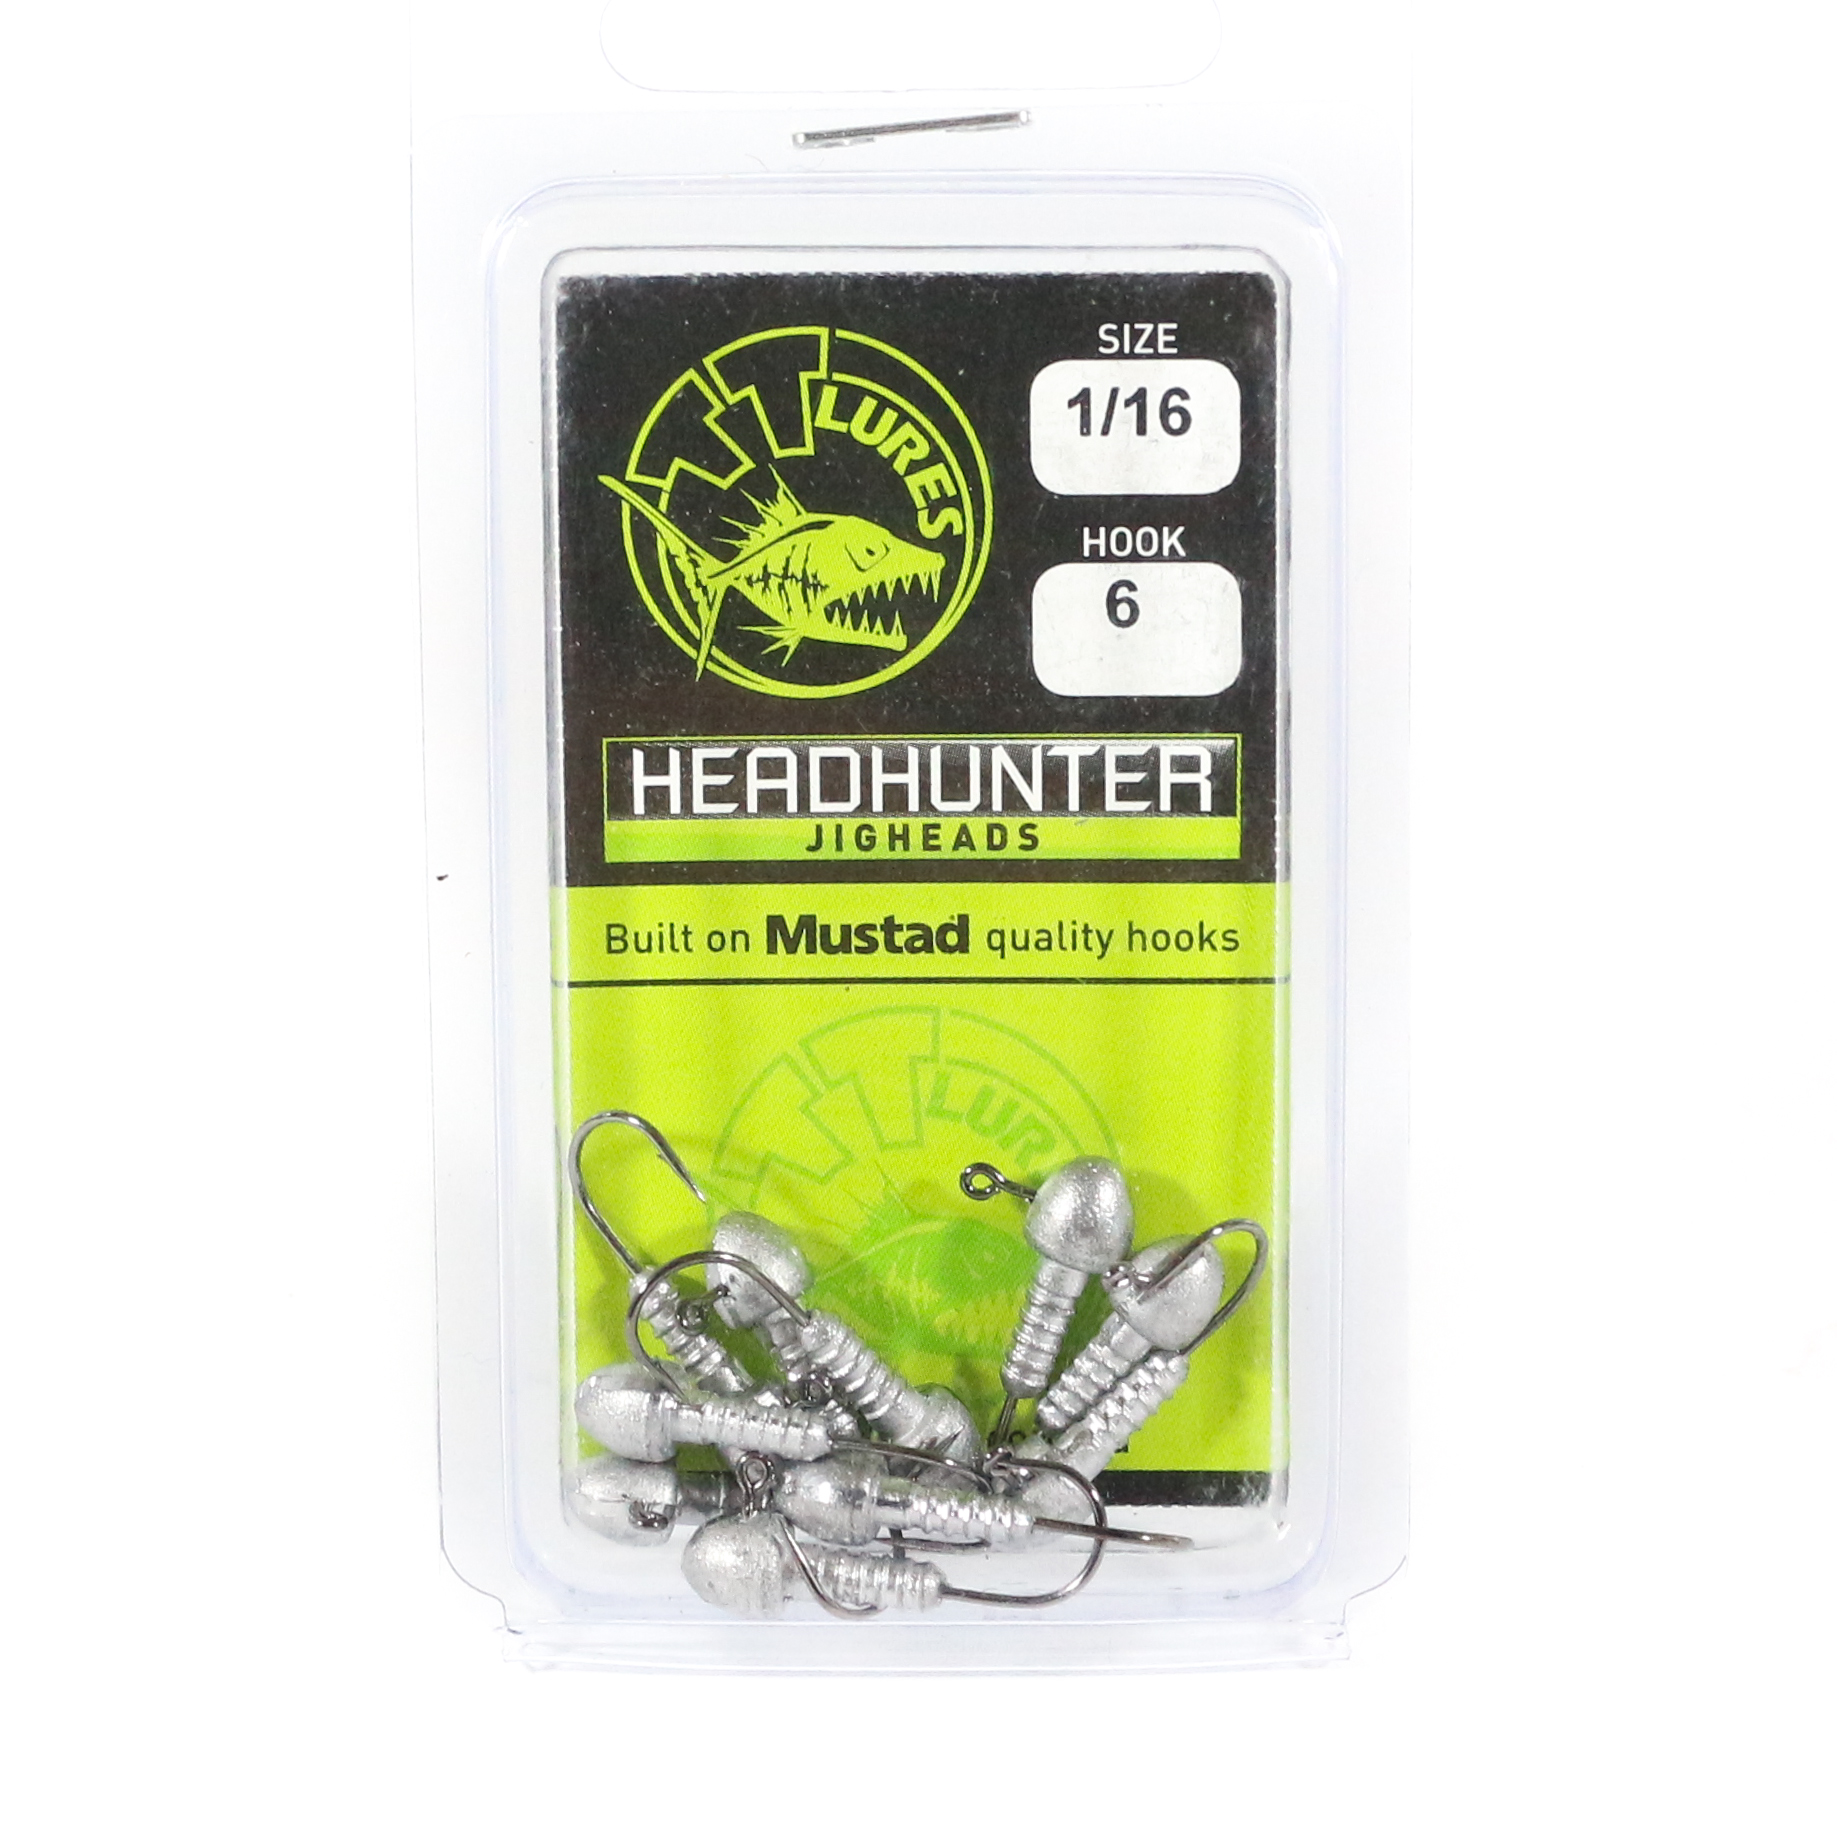 Tackle Tactics TT Head Hunter Jig Head 1/16 oz 6 10 per pack (1036)